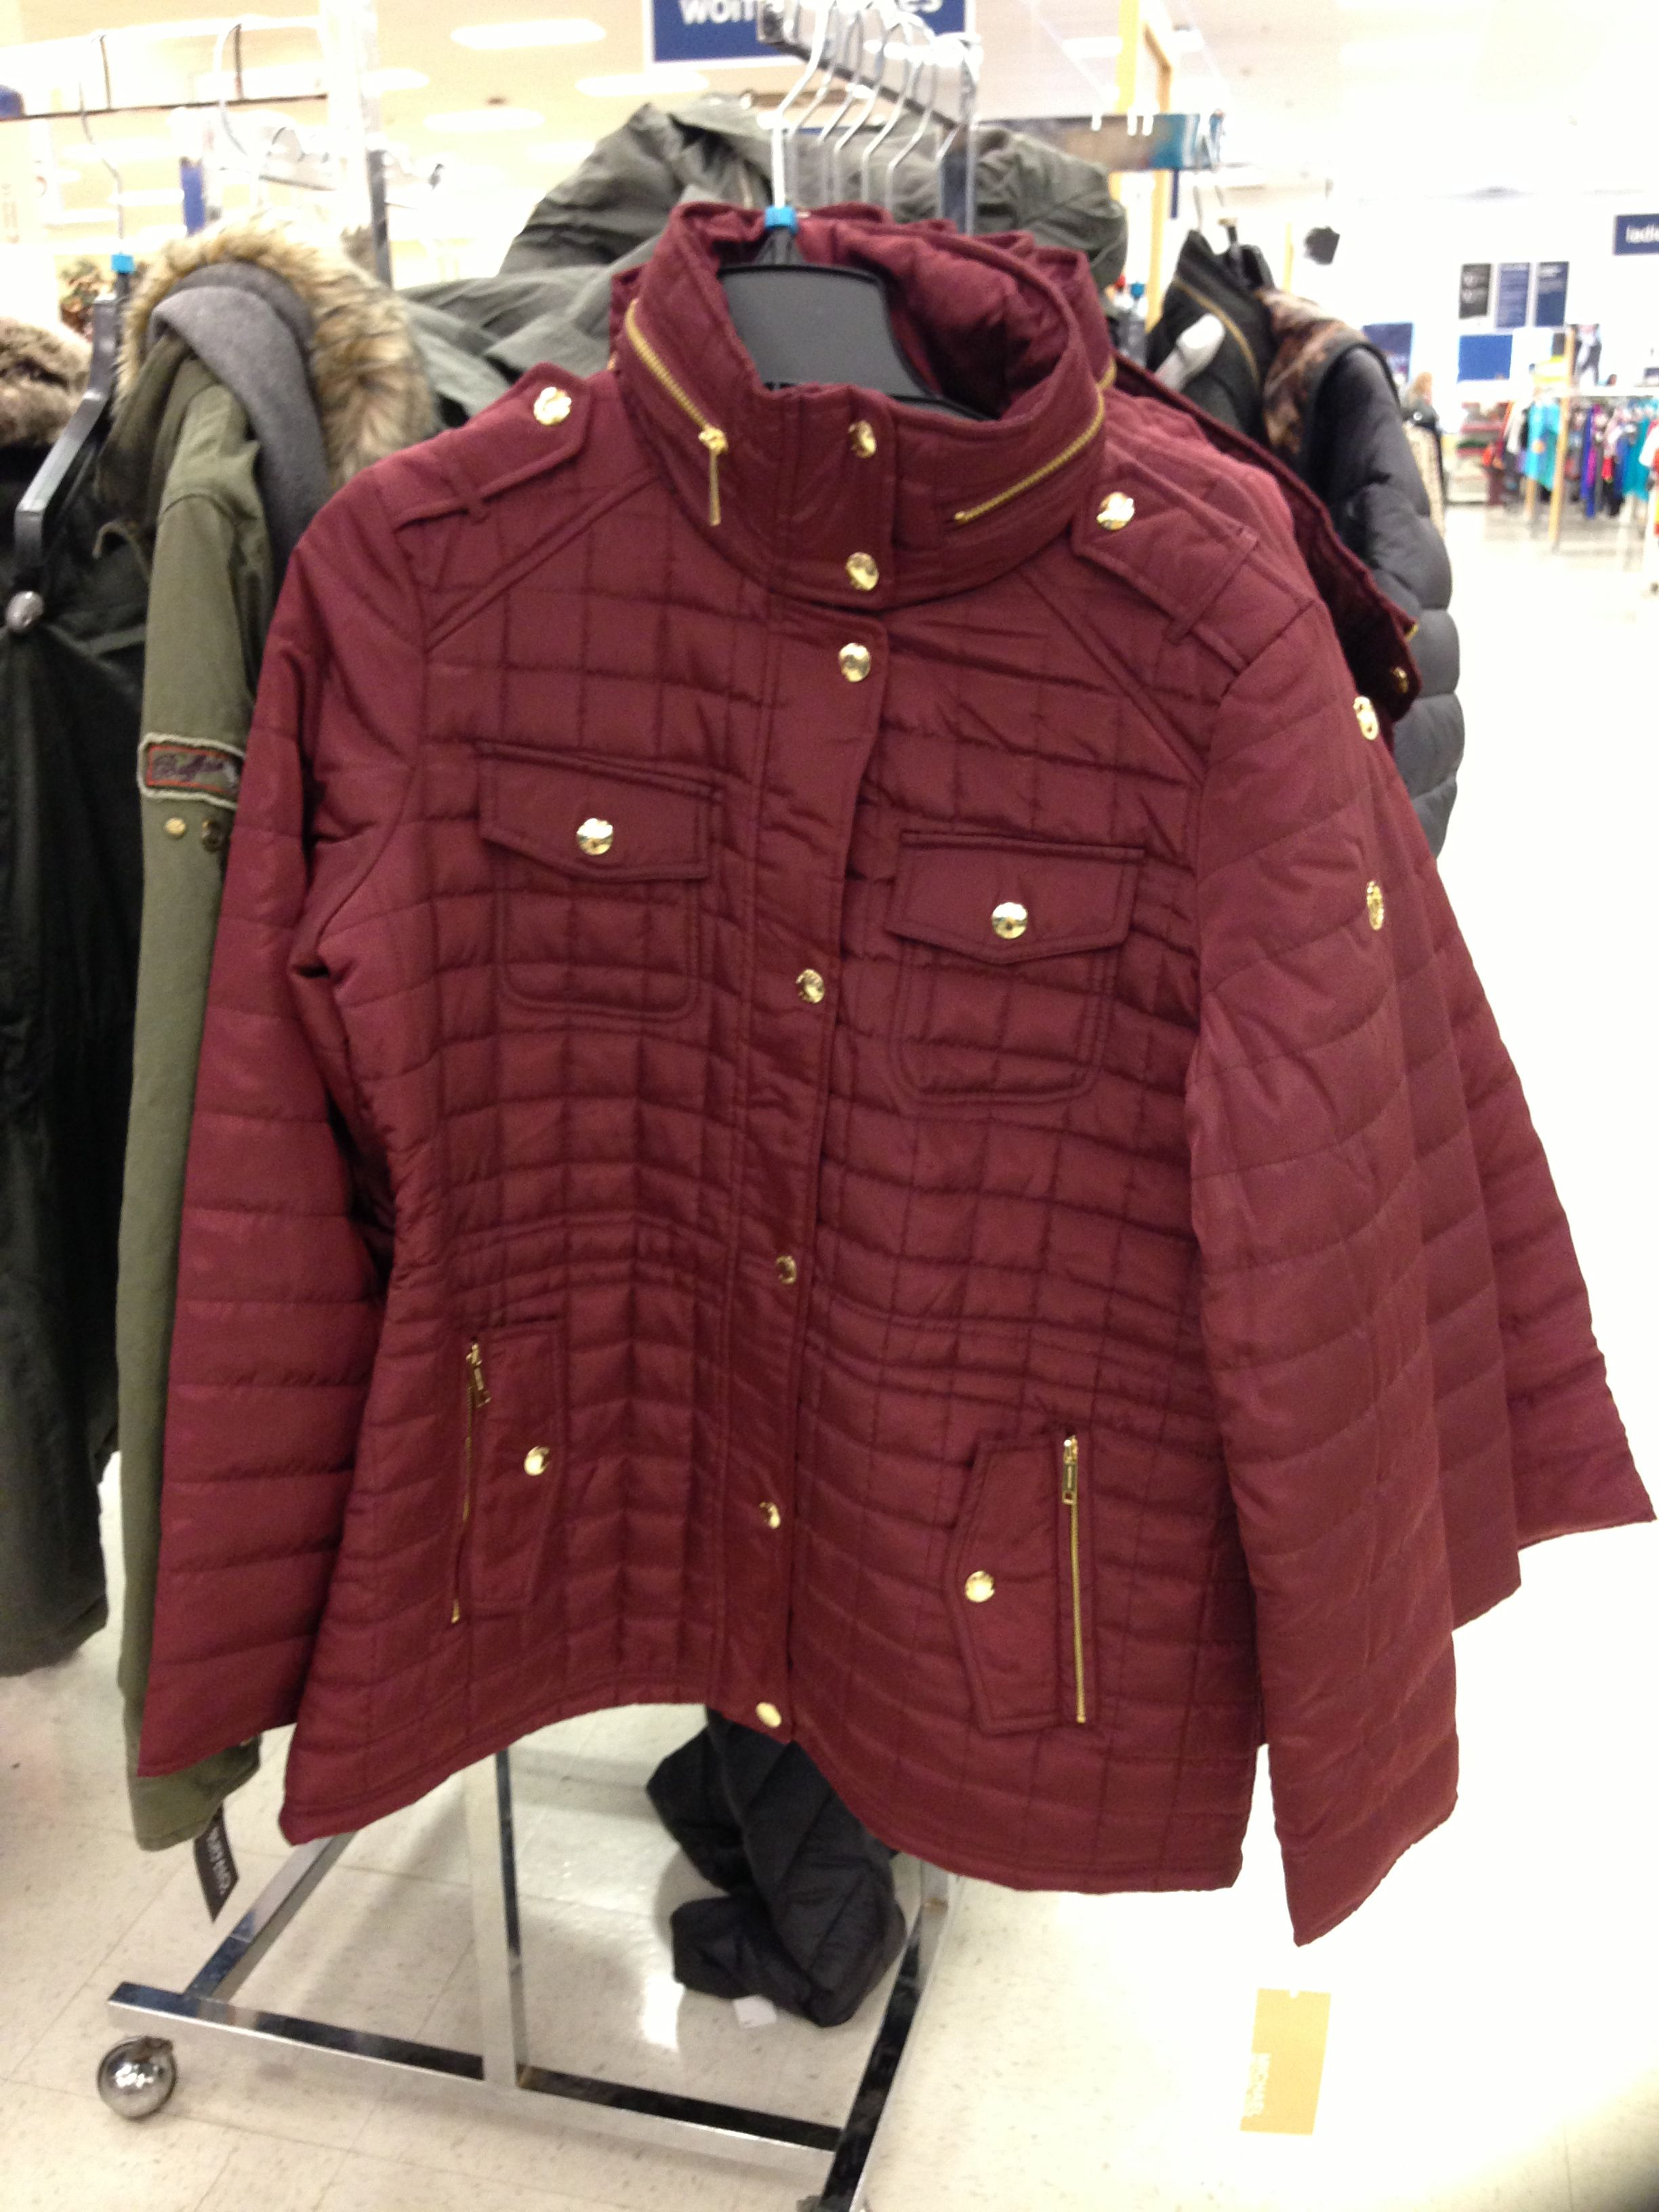 Michael Kors Jacket Marshall S Tj Max Maybe A Different Color But Yes Please Michael Kors Jackets Jackets Winter Jackets [ 3264 x 2448 Pixel ]